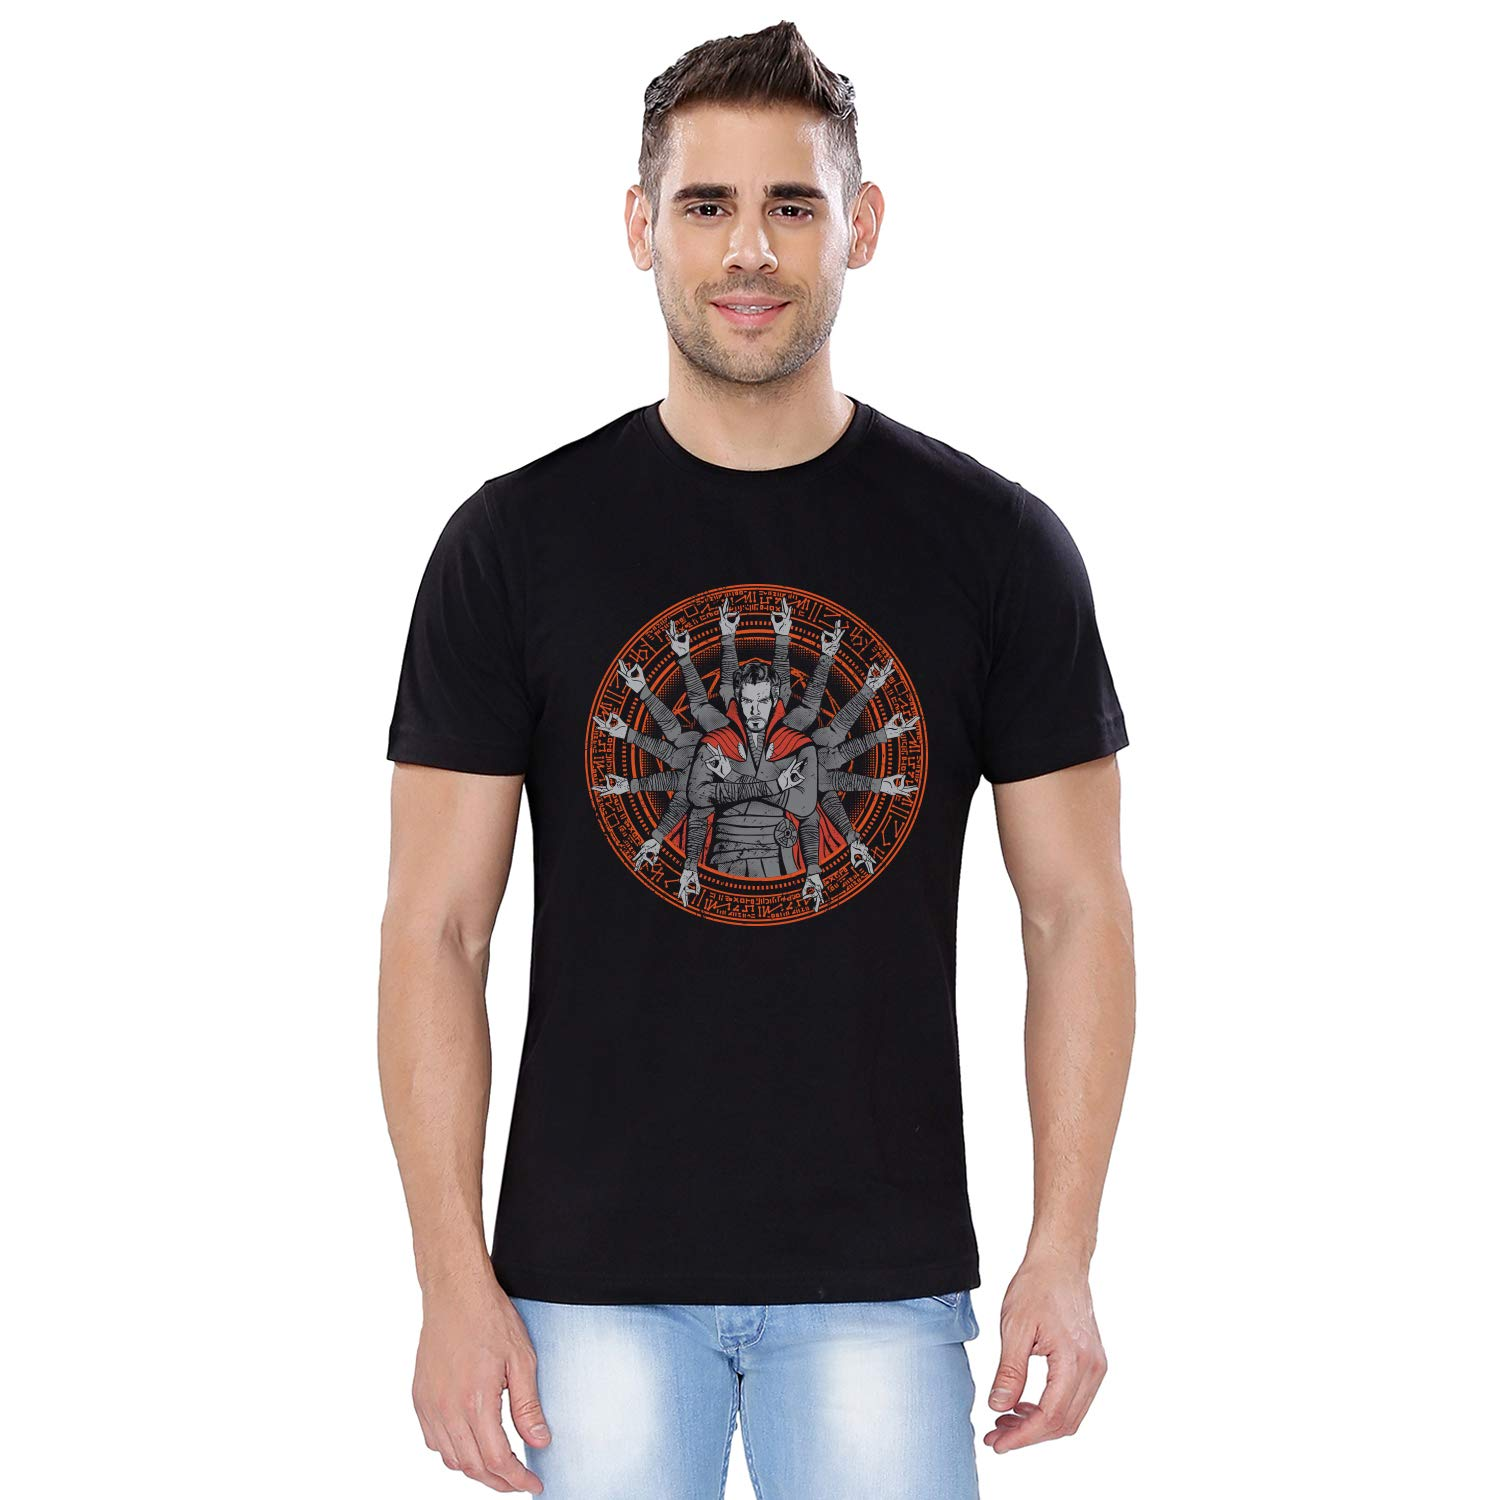 e17d0af6fa97 Doctor Strange  The Sorcerer Supreme Cotton Printed T-Shirt for Men Women  and Girls  Amazon.in  Clothing   Accessories